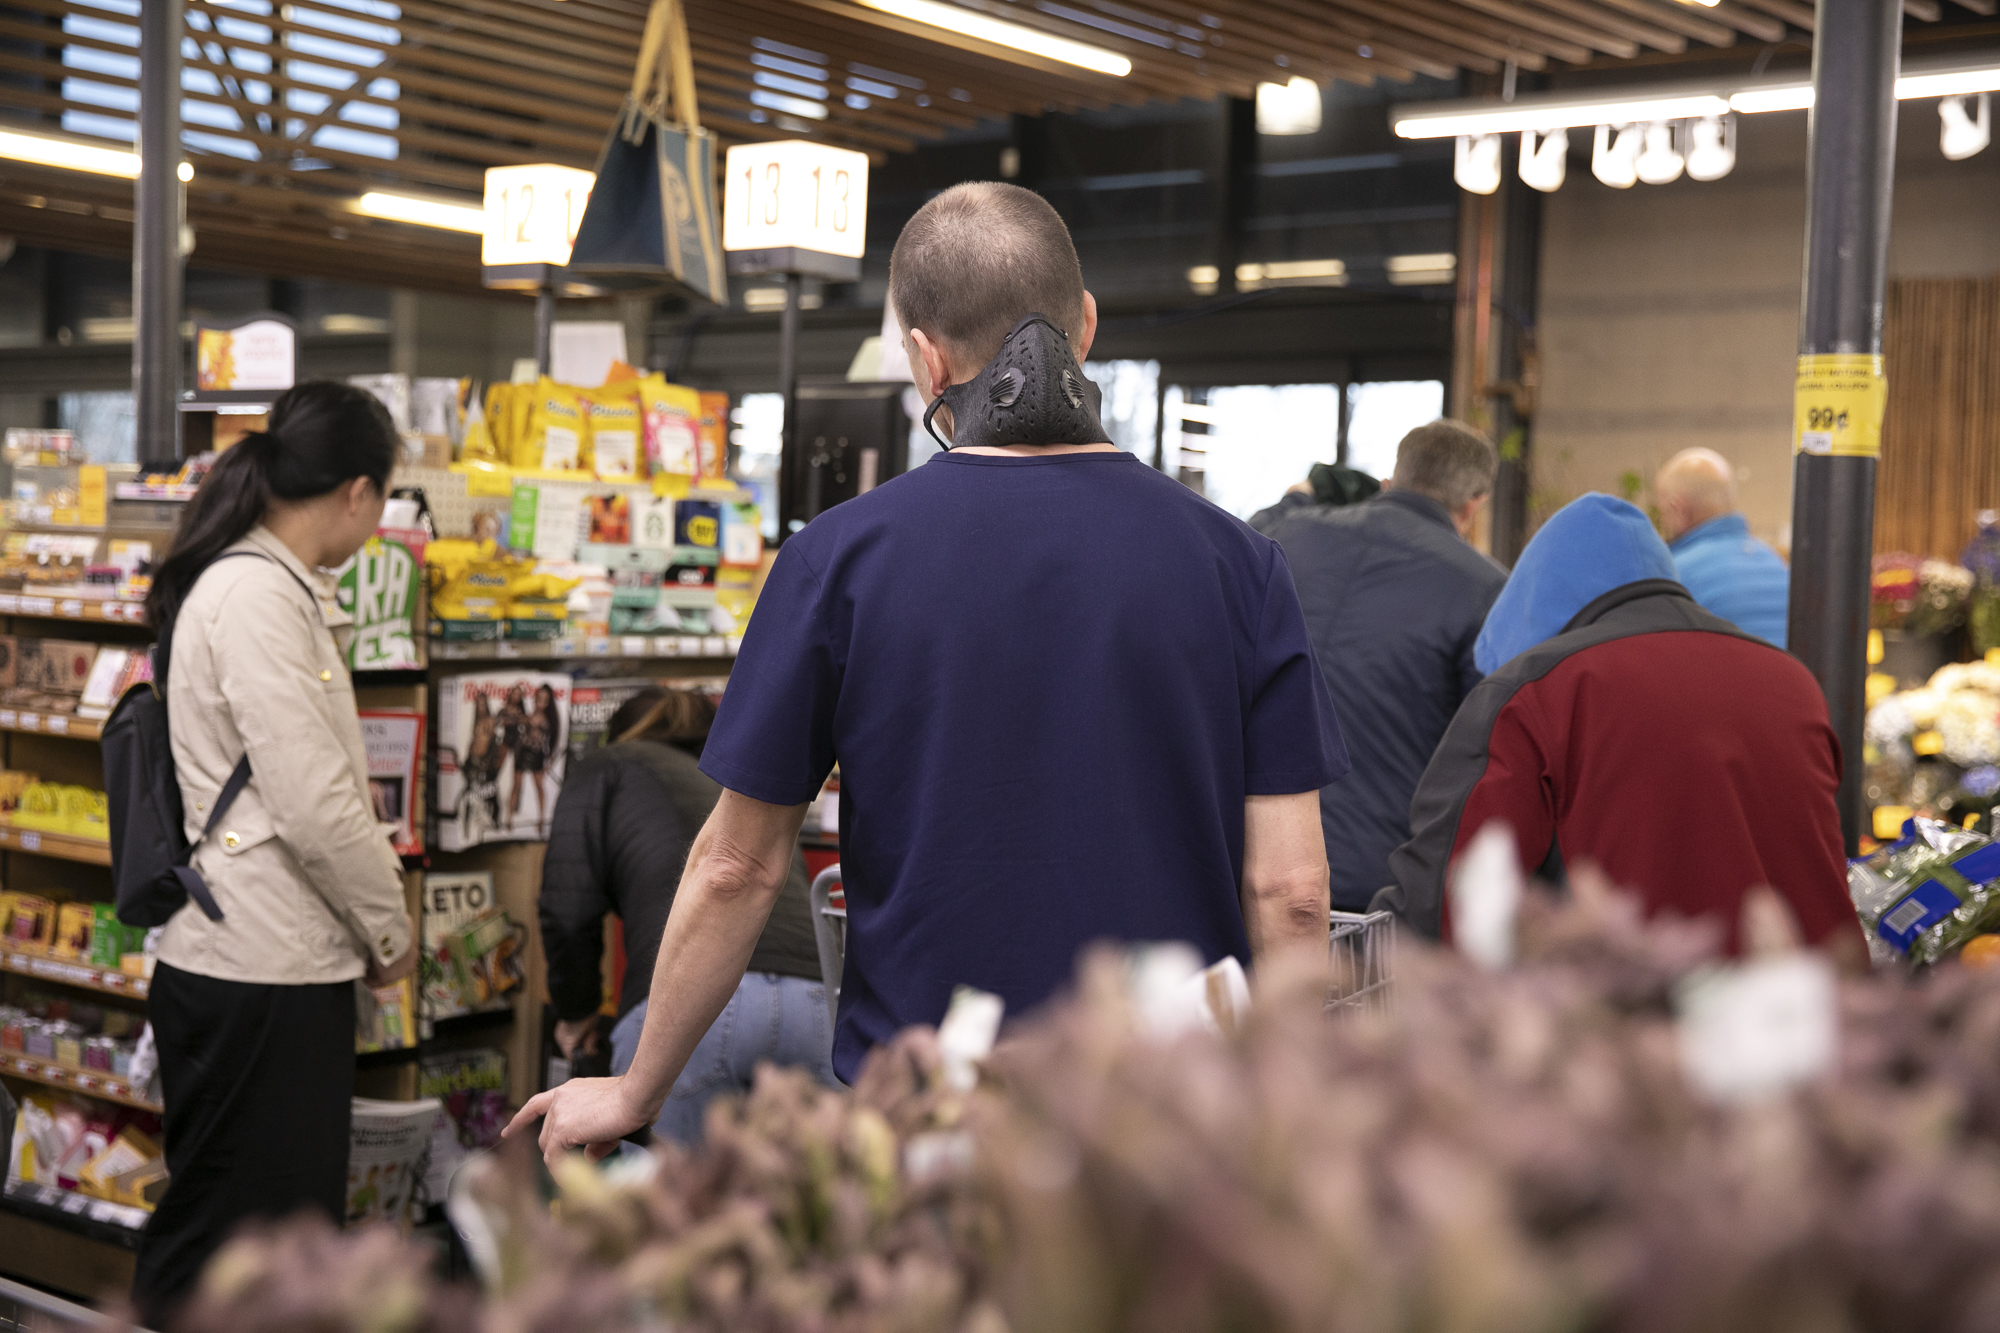 A man with a protective mask around his neck waits in the checkout line at Berkeley Bowl on March 13, 2020. Photo by Anne Wernikoff for CalMatters